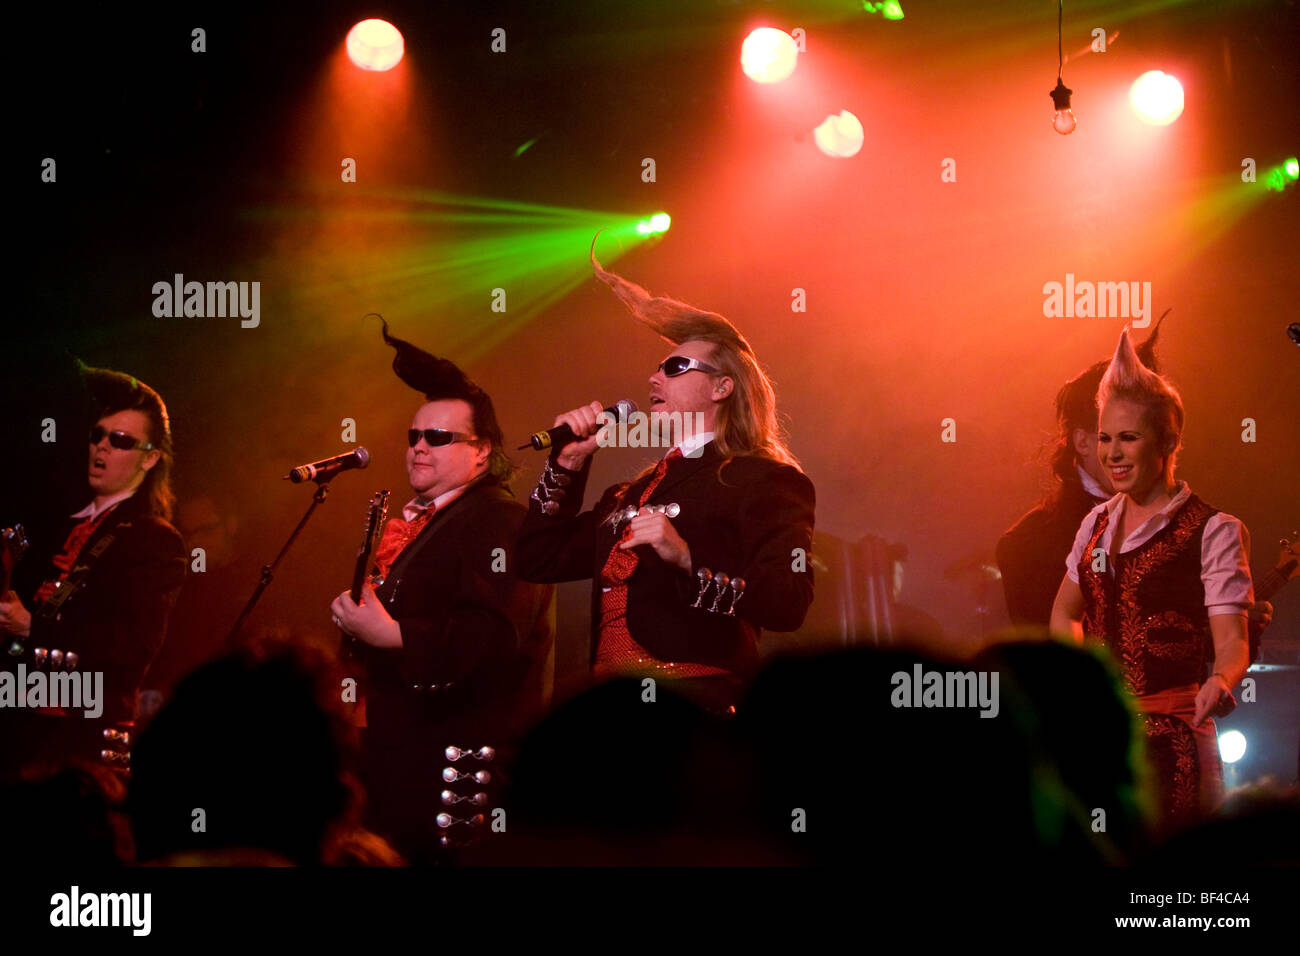 Finnish band, Leningrad Cowboys, performing live at the Schueuer, Lucerne, Switzerland, Europe - Stock Image